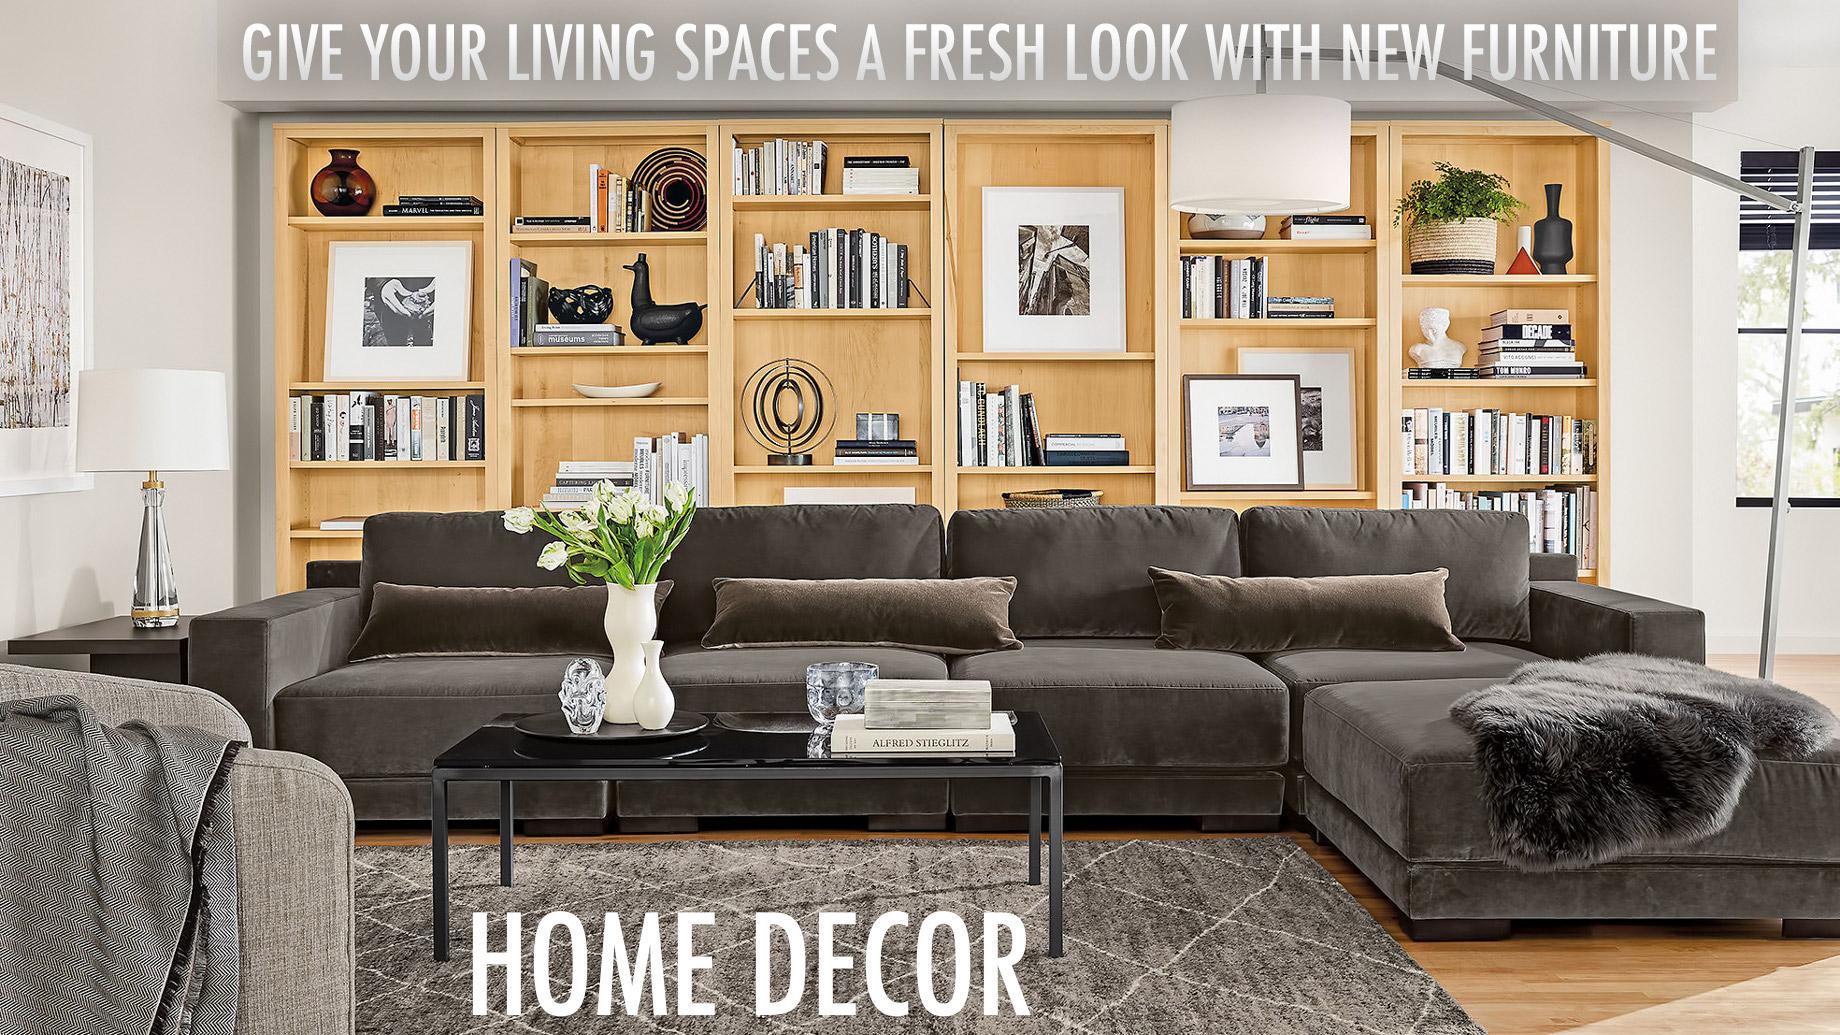 give your living spaces a fresh look